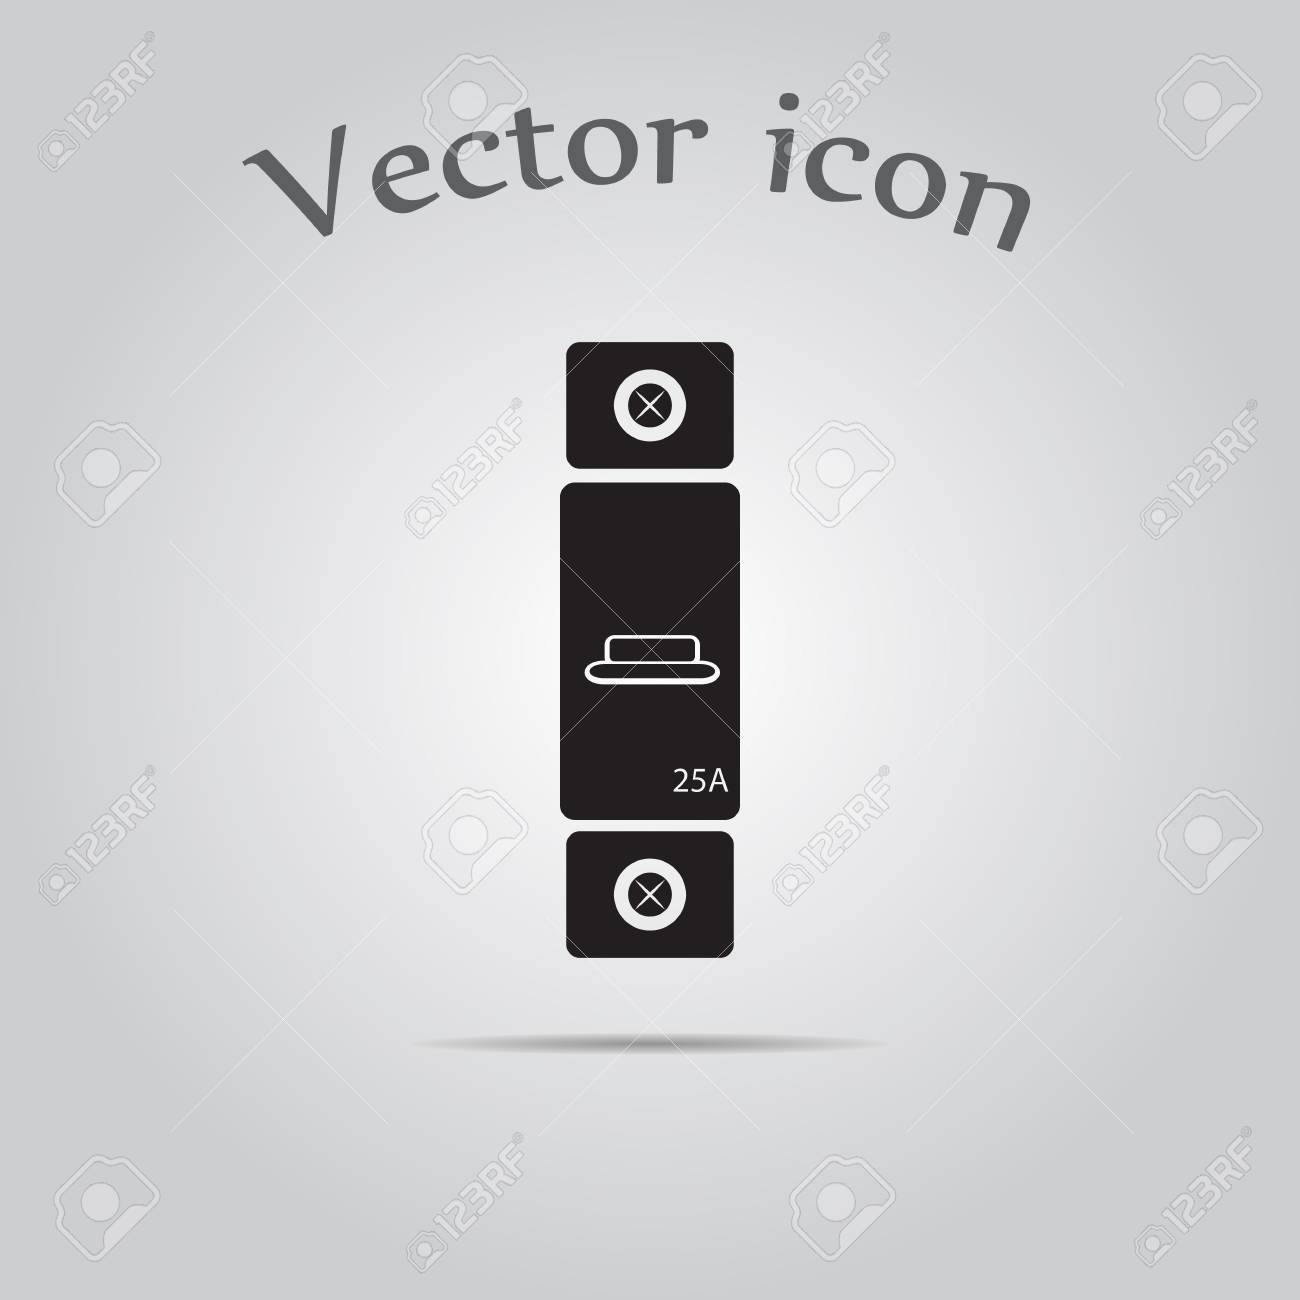 One Phase Machine 25 Amps Icon Royalty Free Cliparts Vectors And